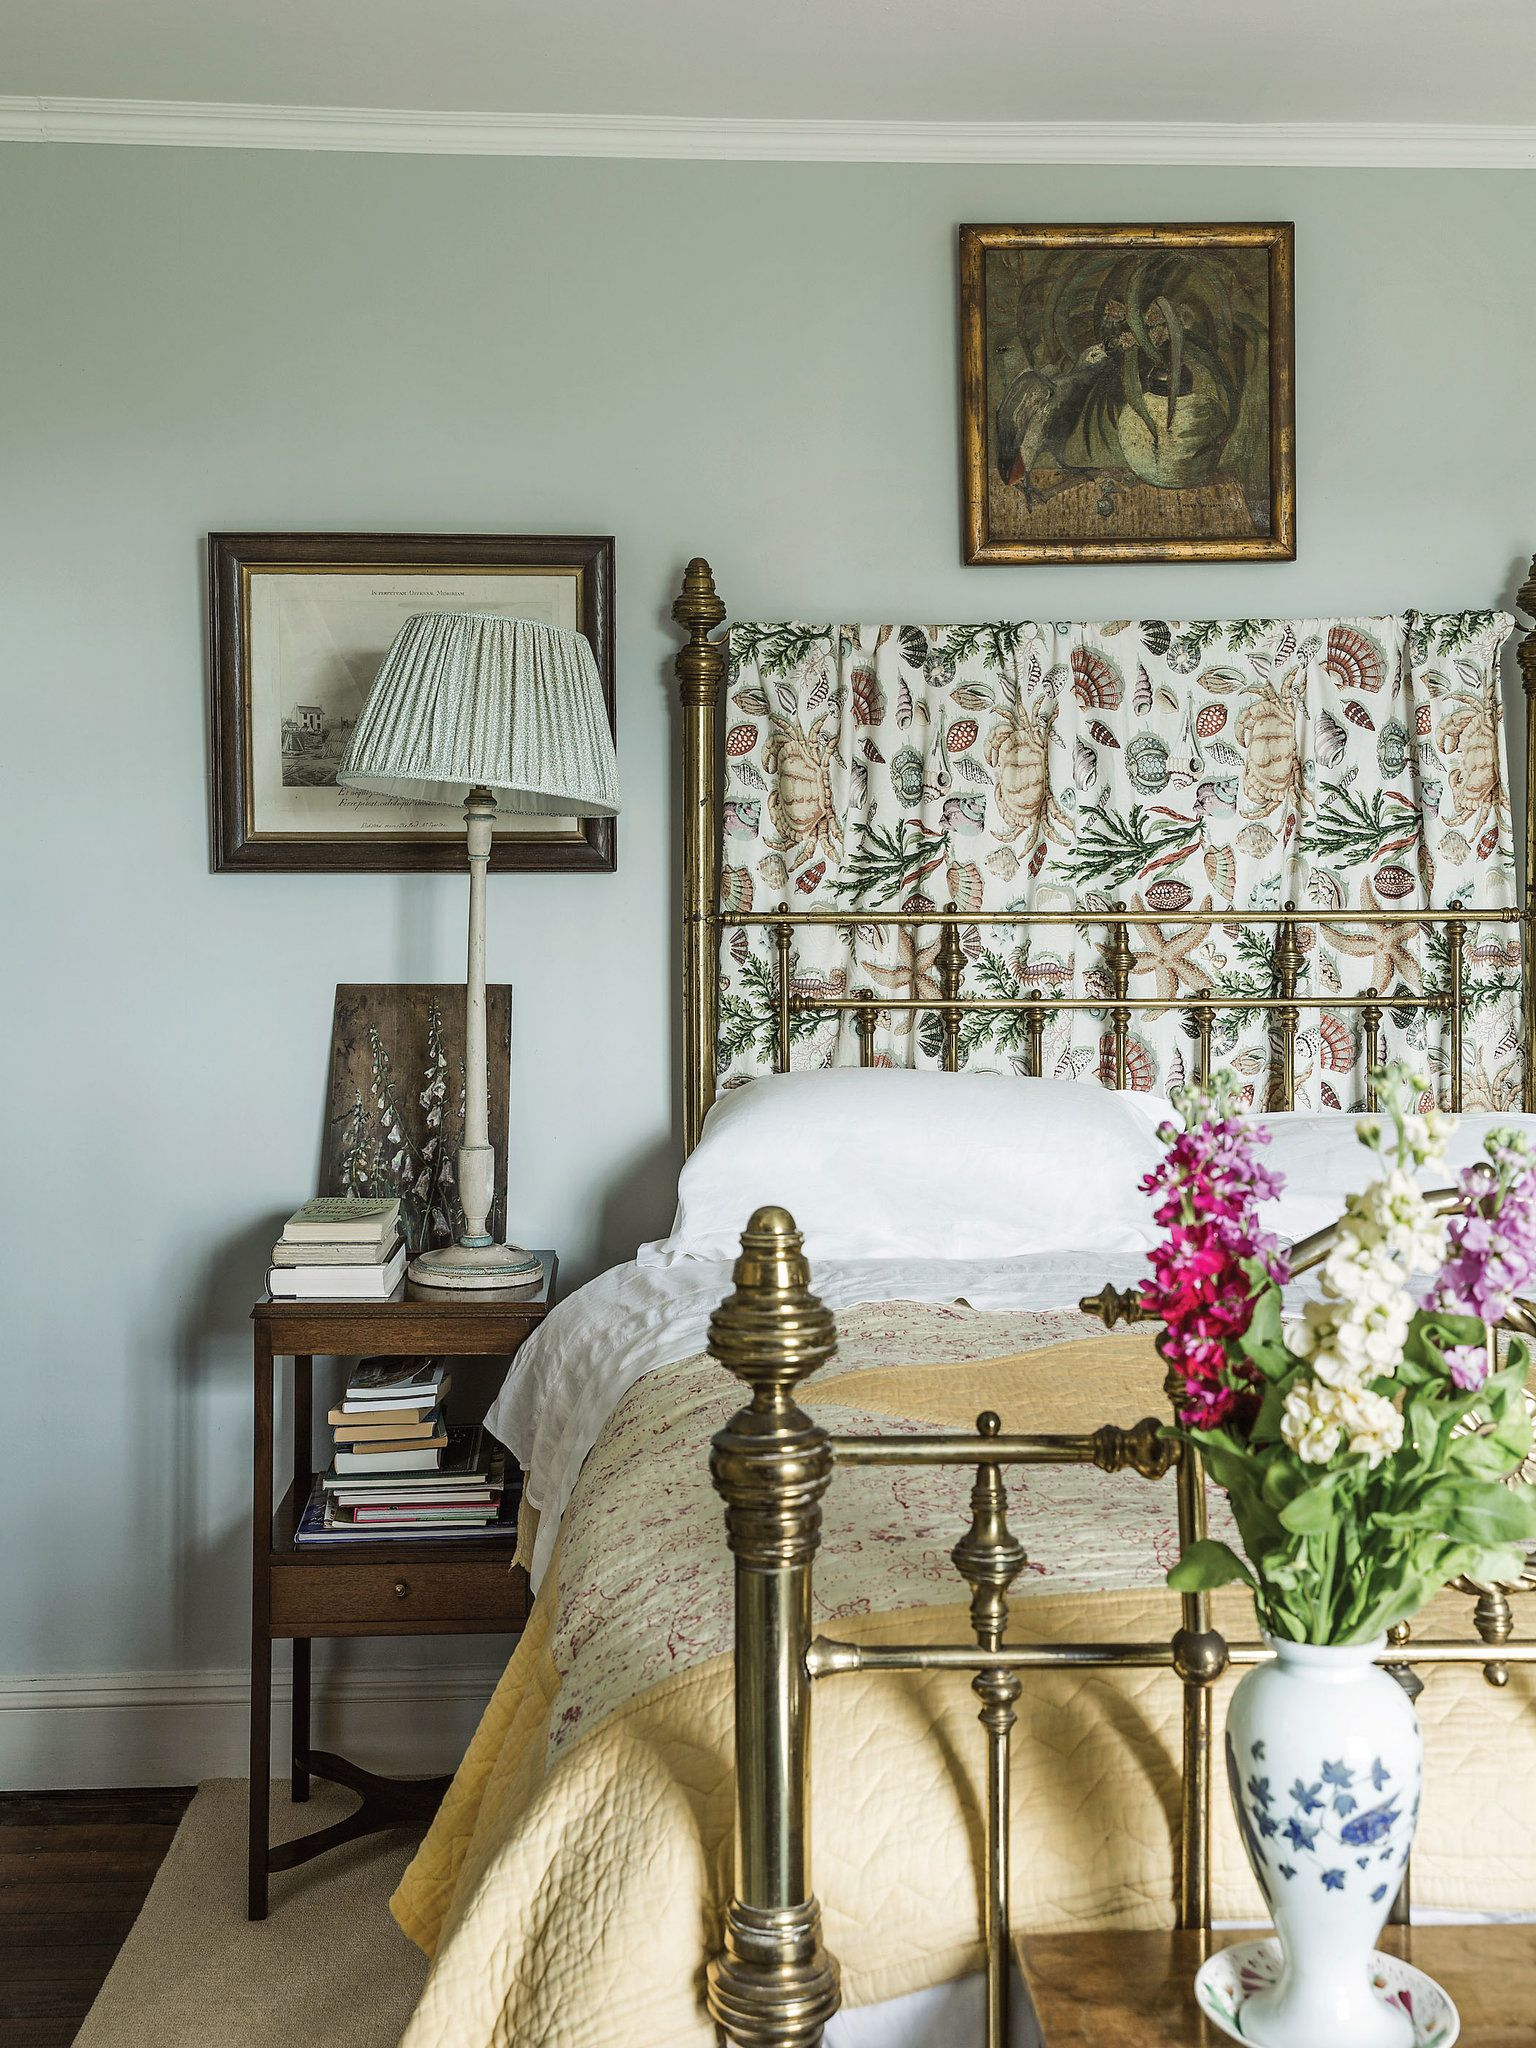 In The Guest Room A Painted Wood Lamp With Textile Shade Next To